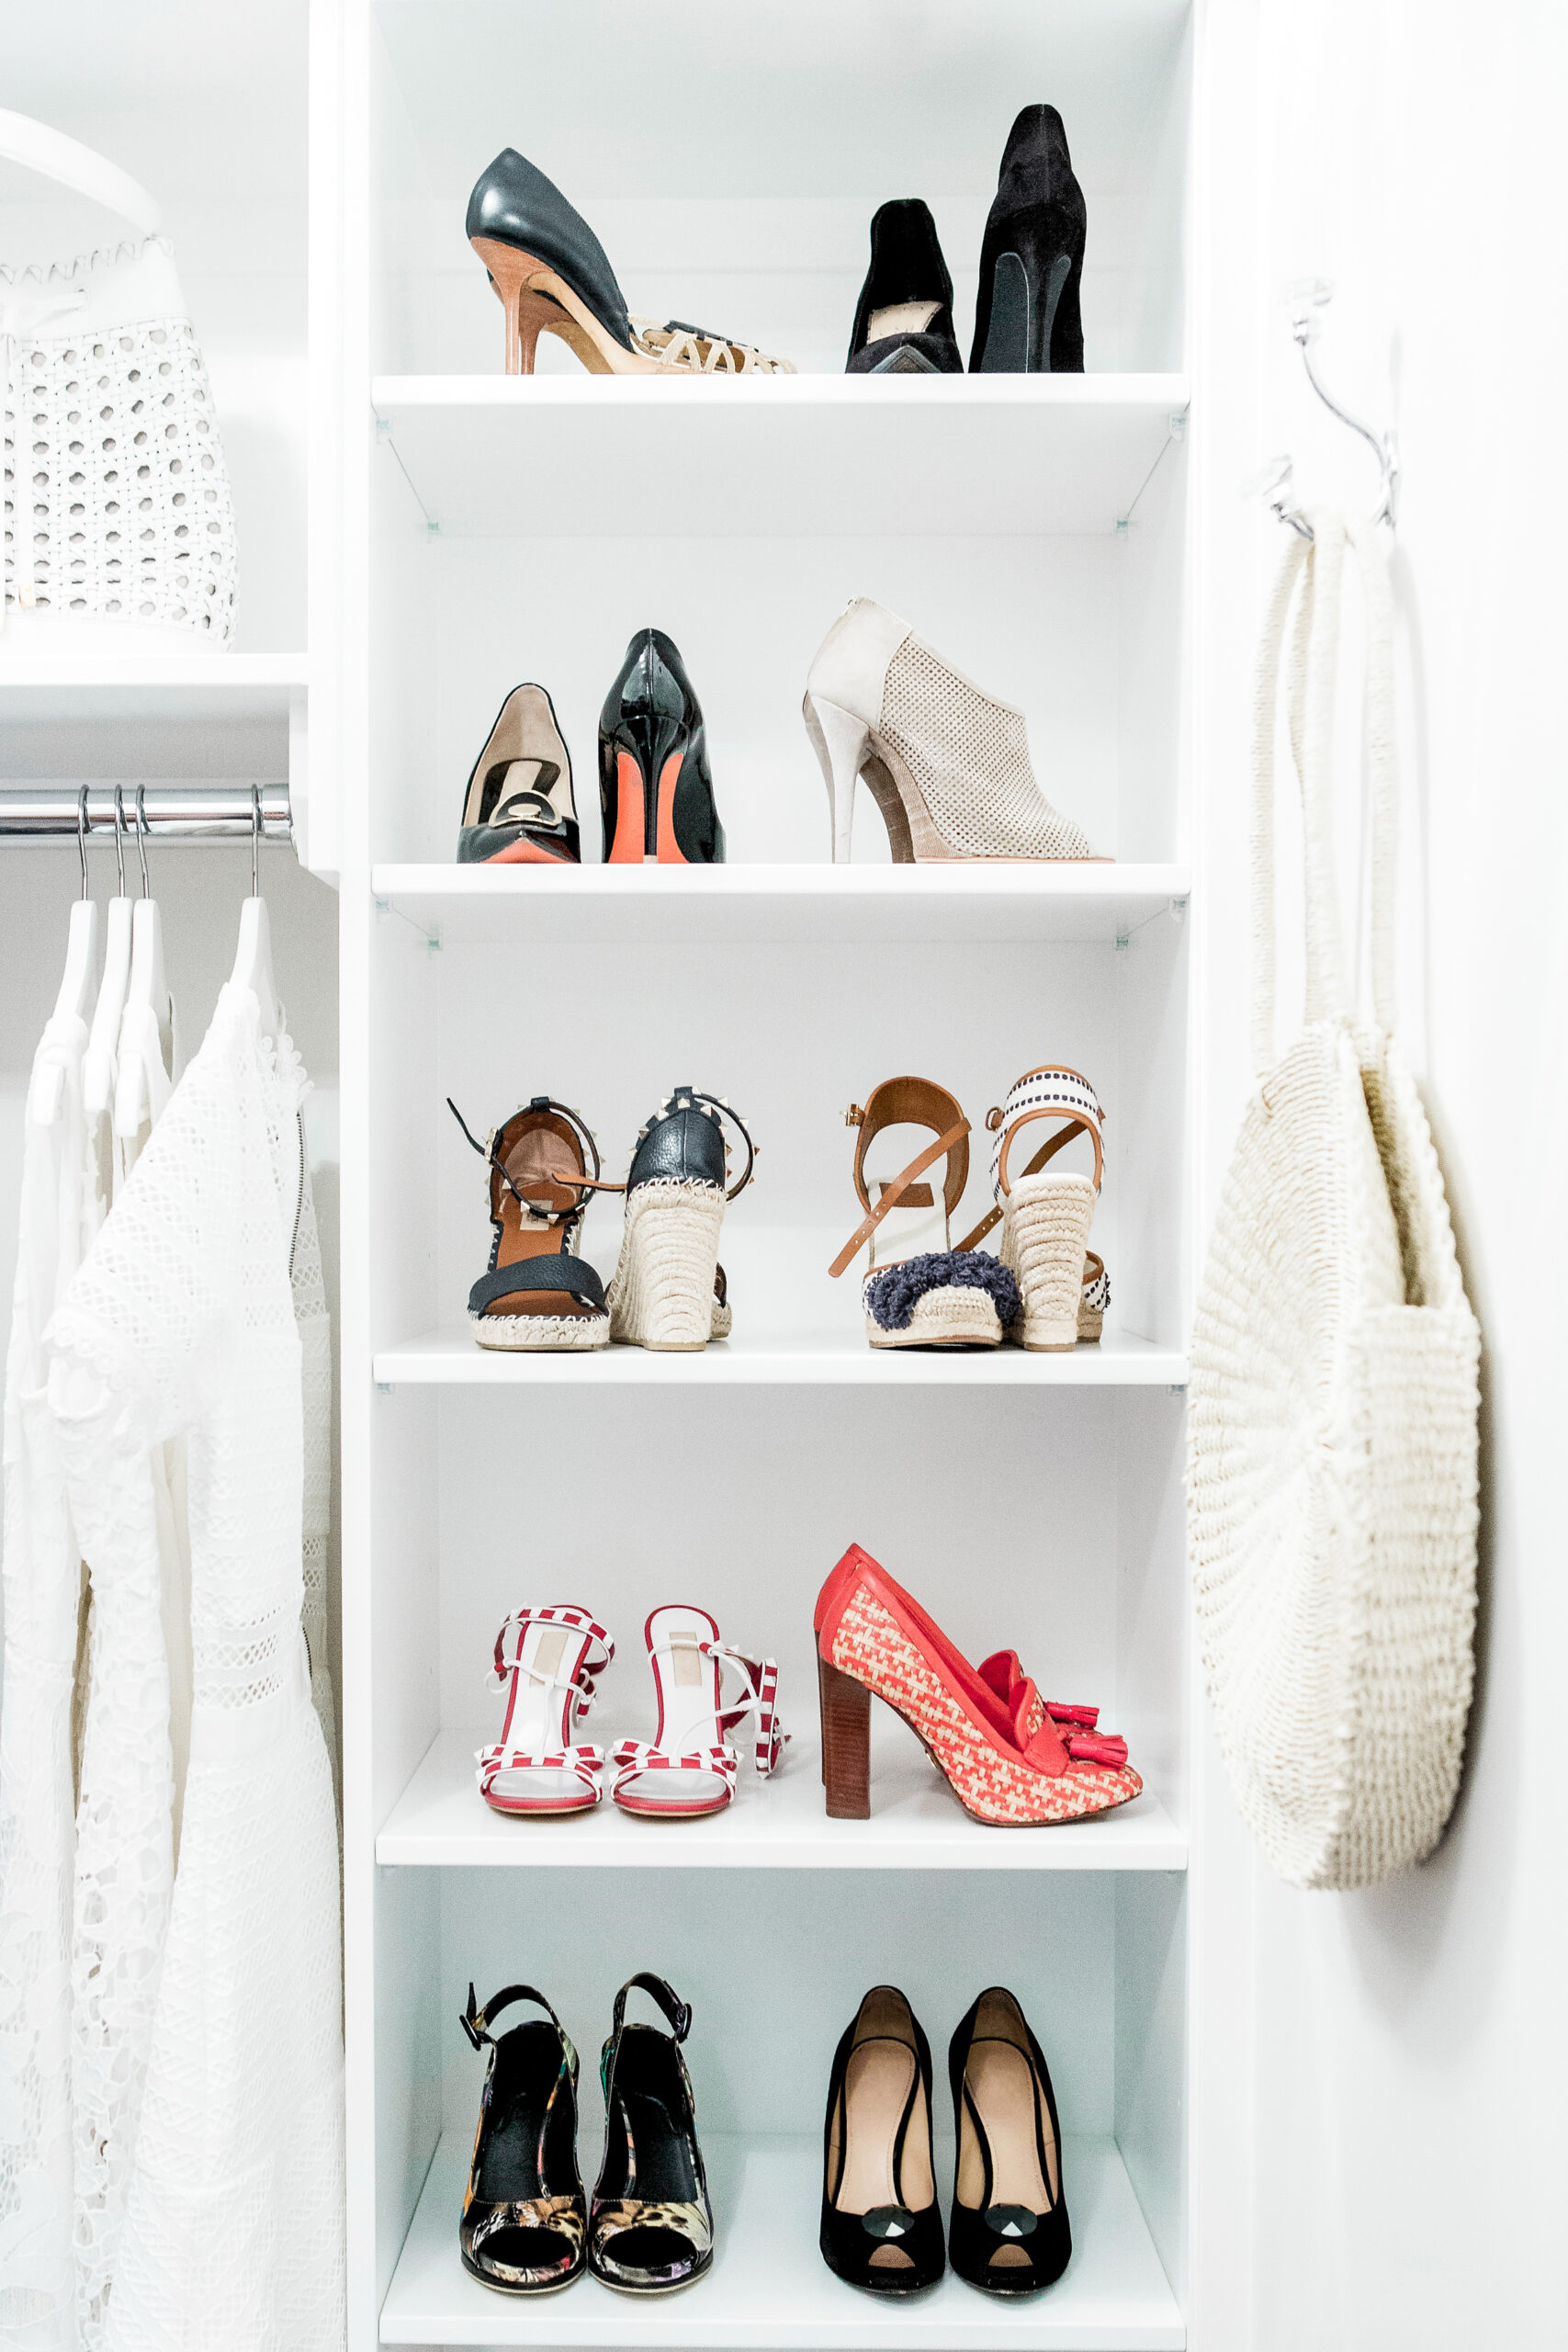 Have Time on Your Hands? Let's Spring Clean the Closet with These Tips!